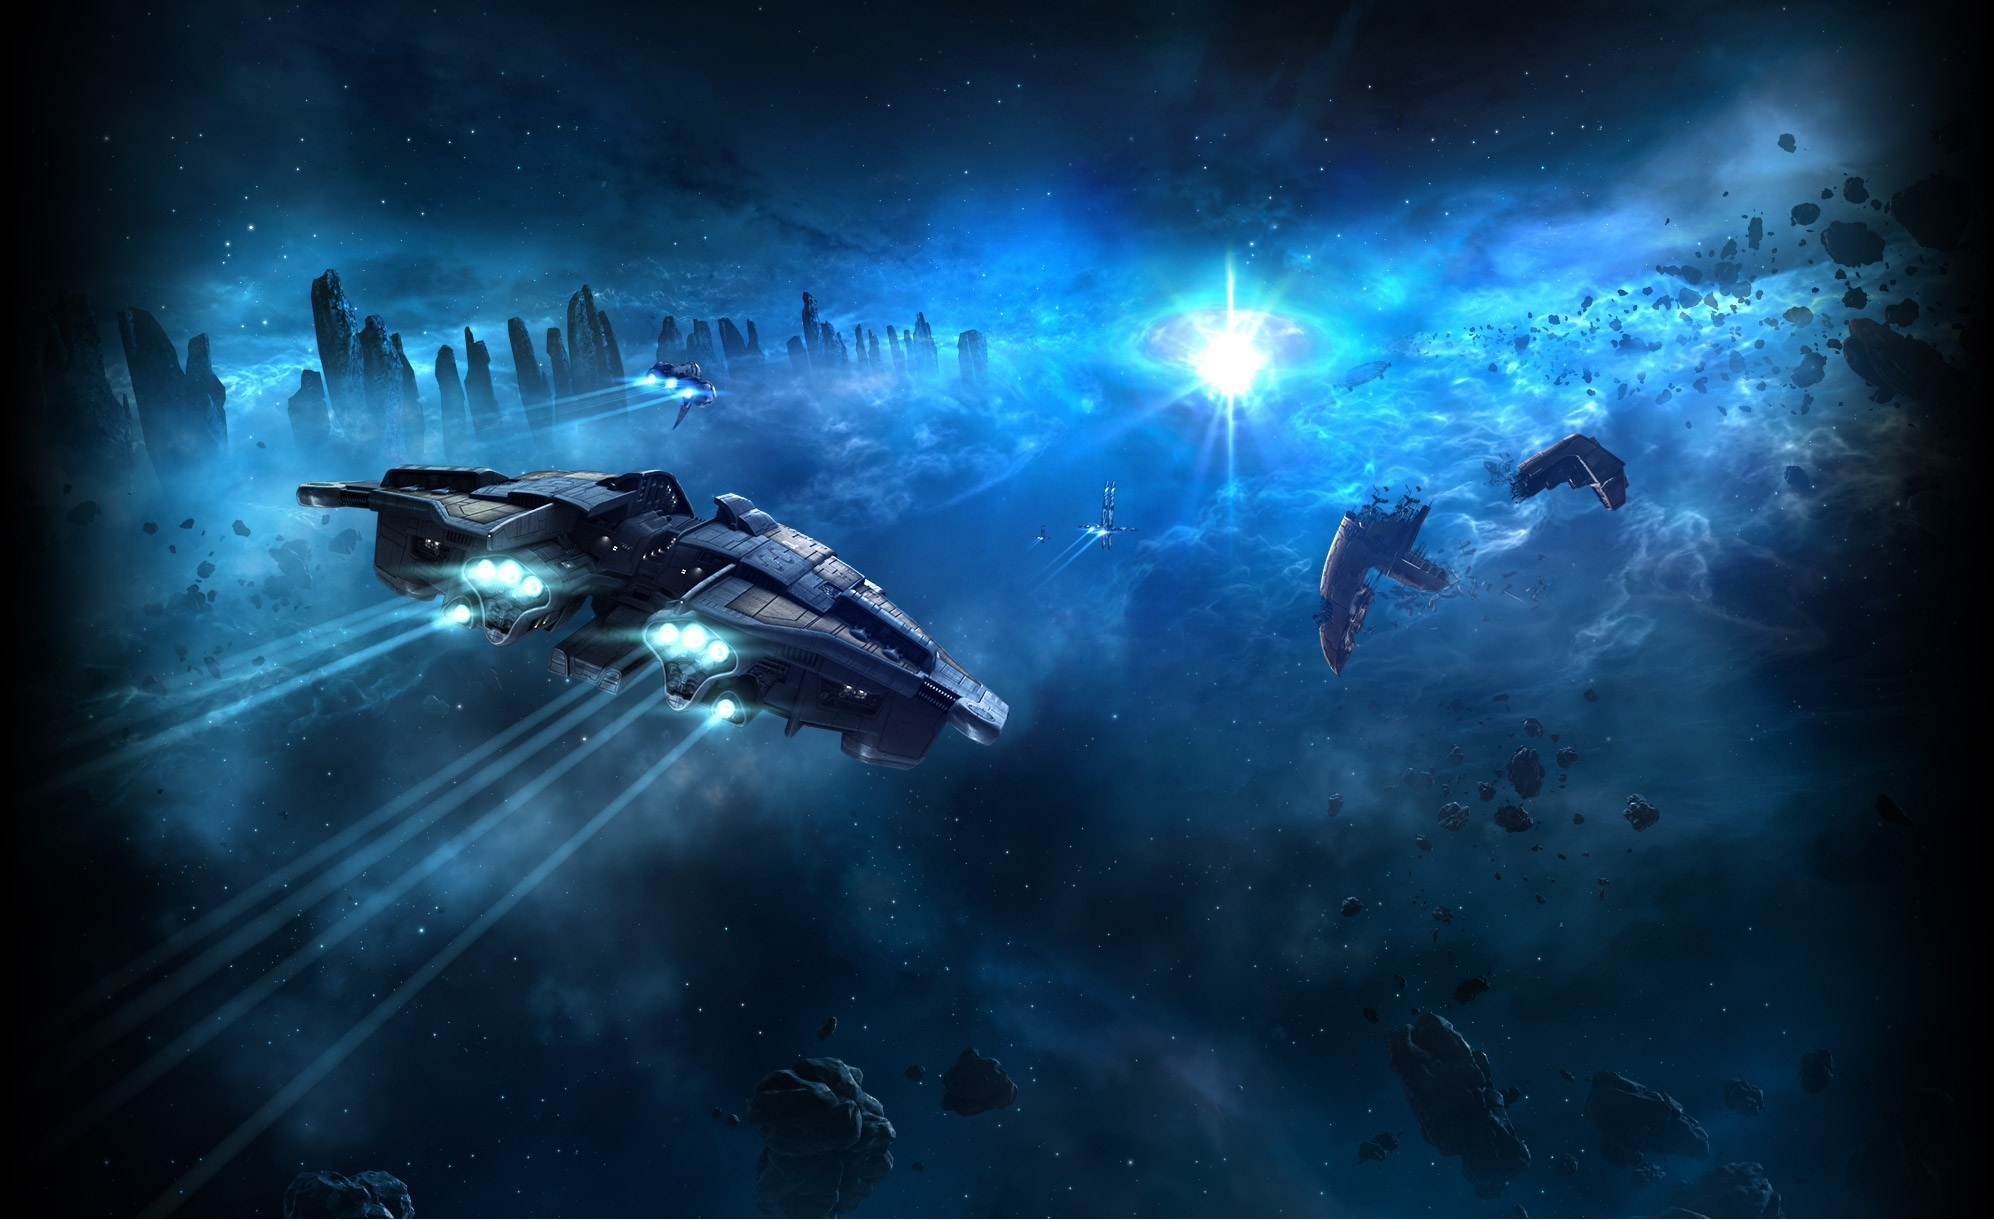 3d Home Wallpaper For Pc Eve Online Odyssey Launches Inspiring New Adventures